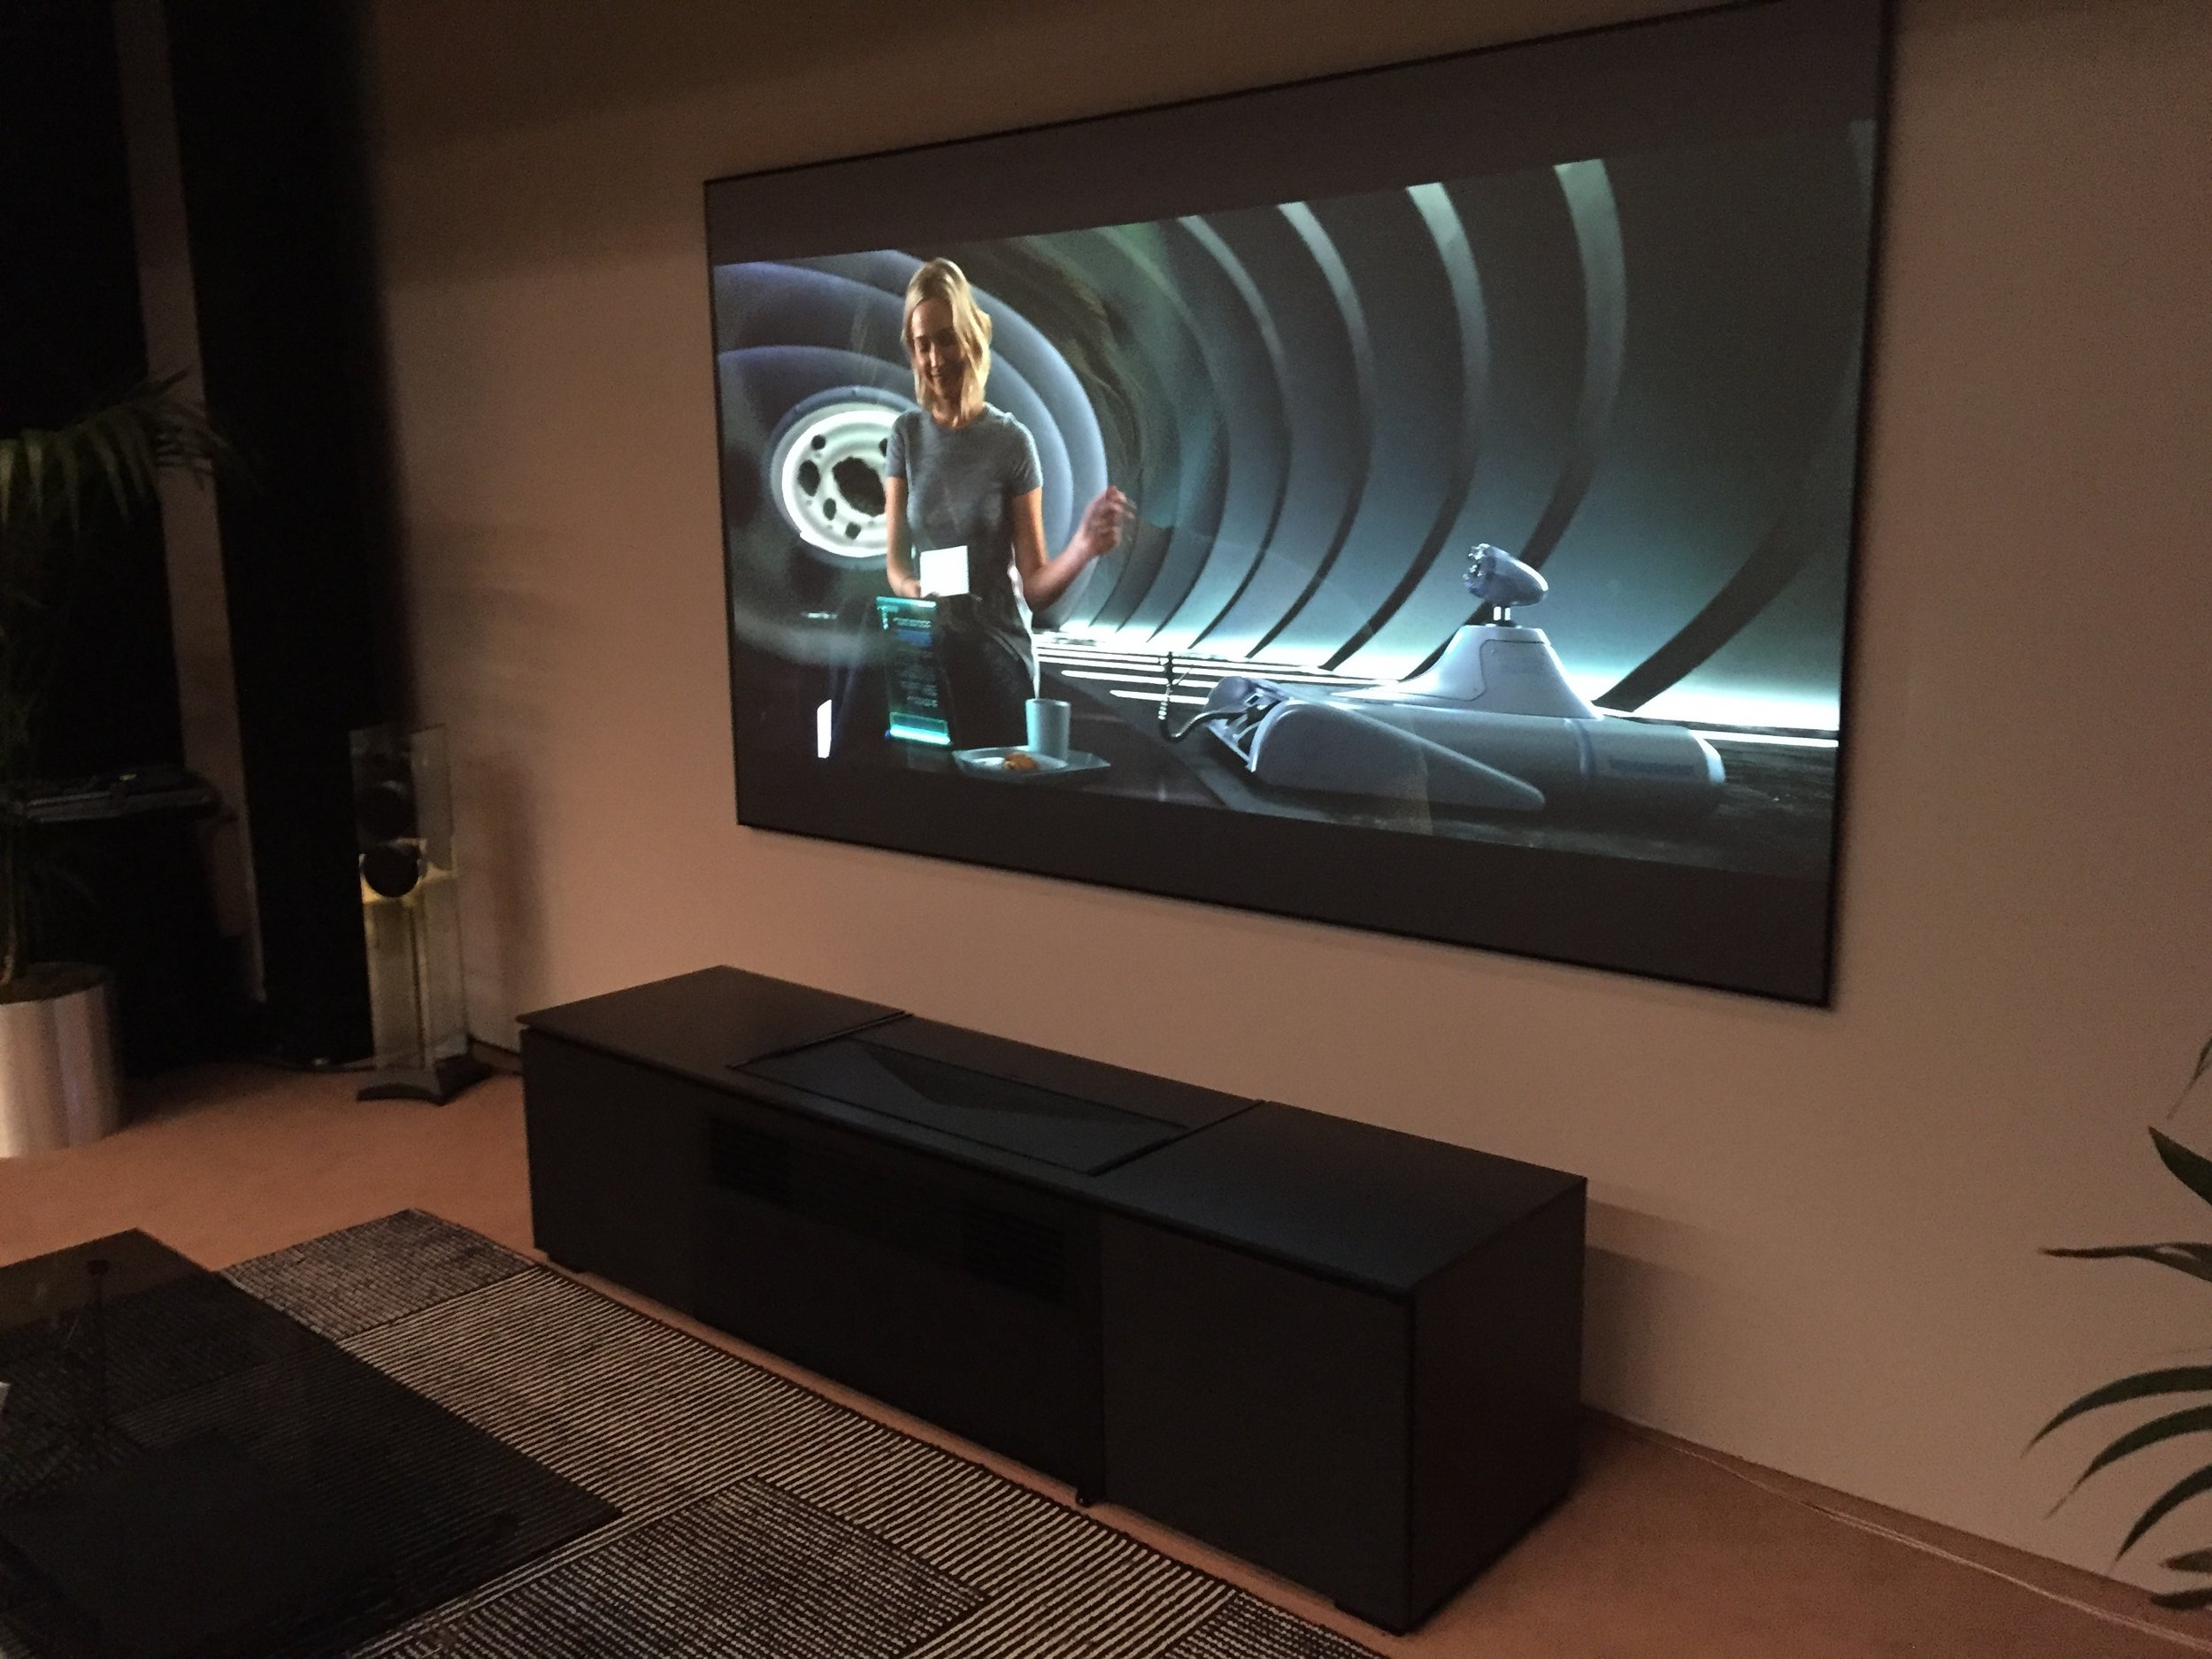 Sony's $25k Ultra Short Throw 4K projector